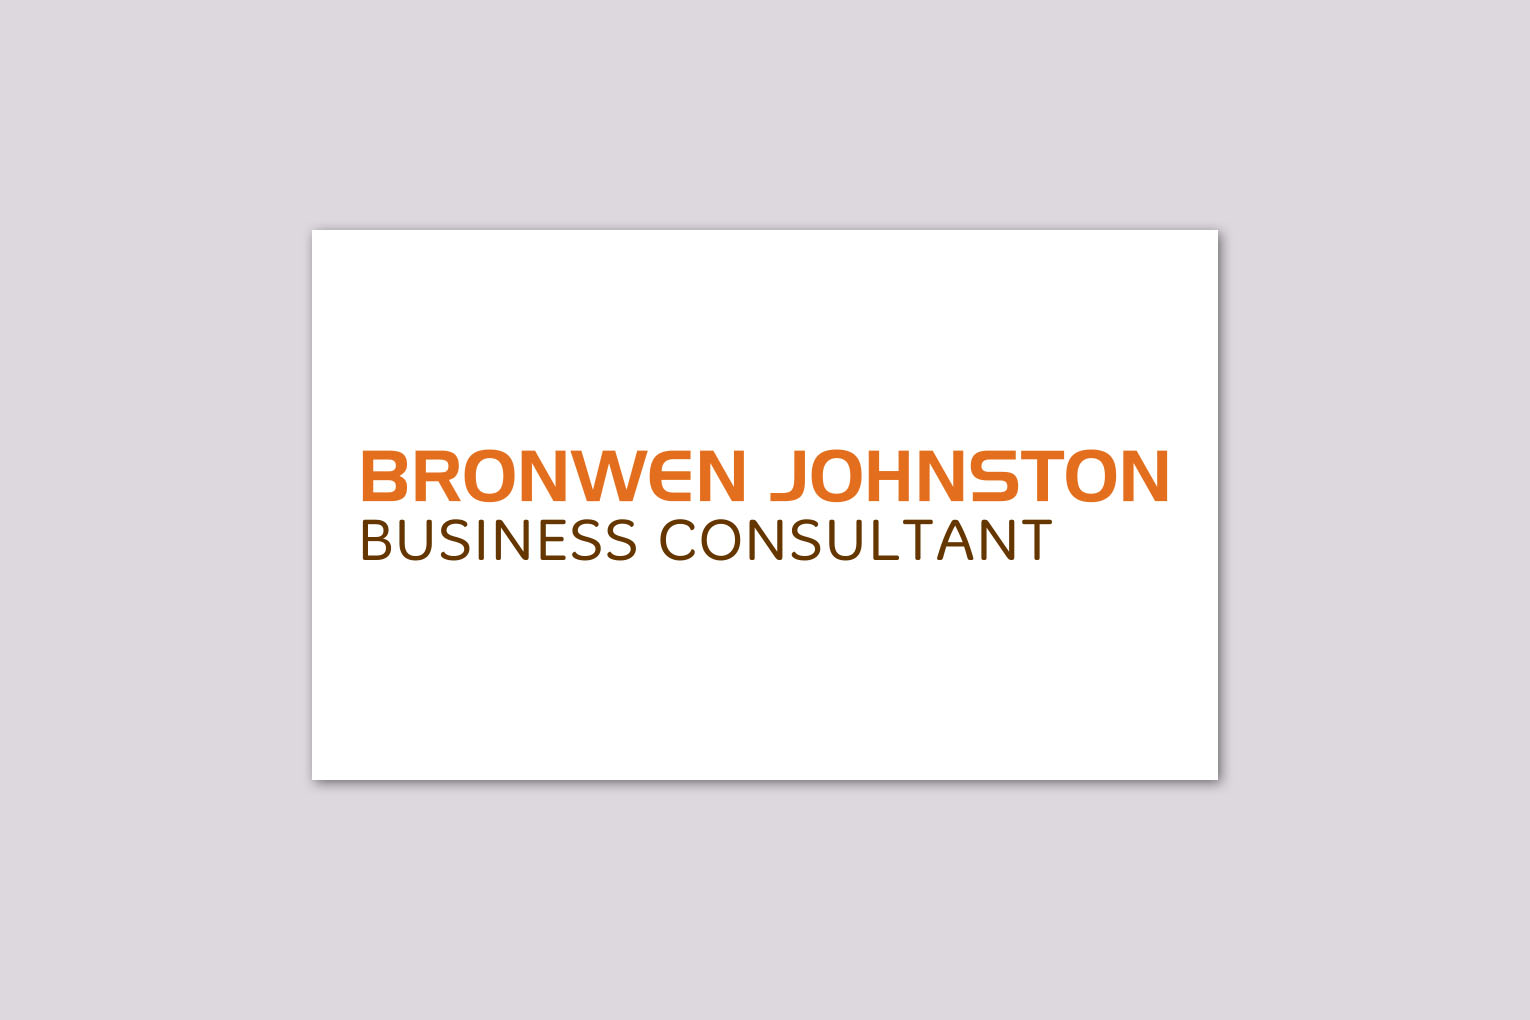 bronwen-johnston-corporate-identity-design-01